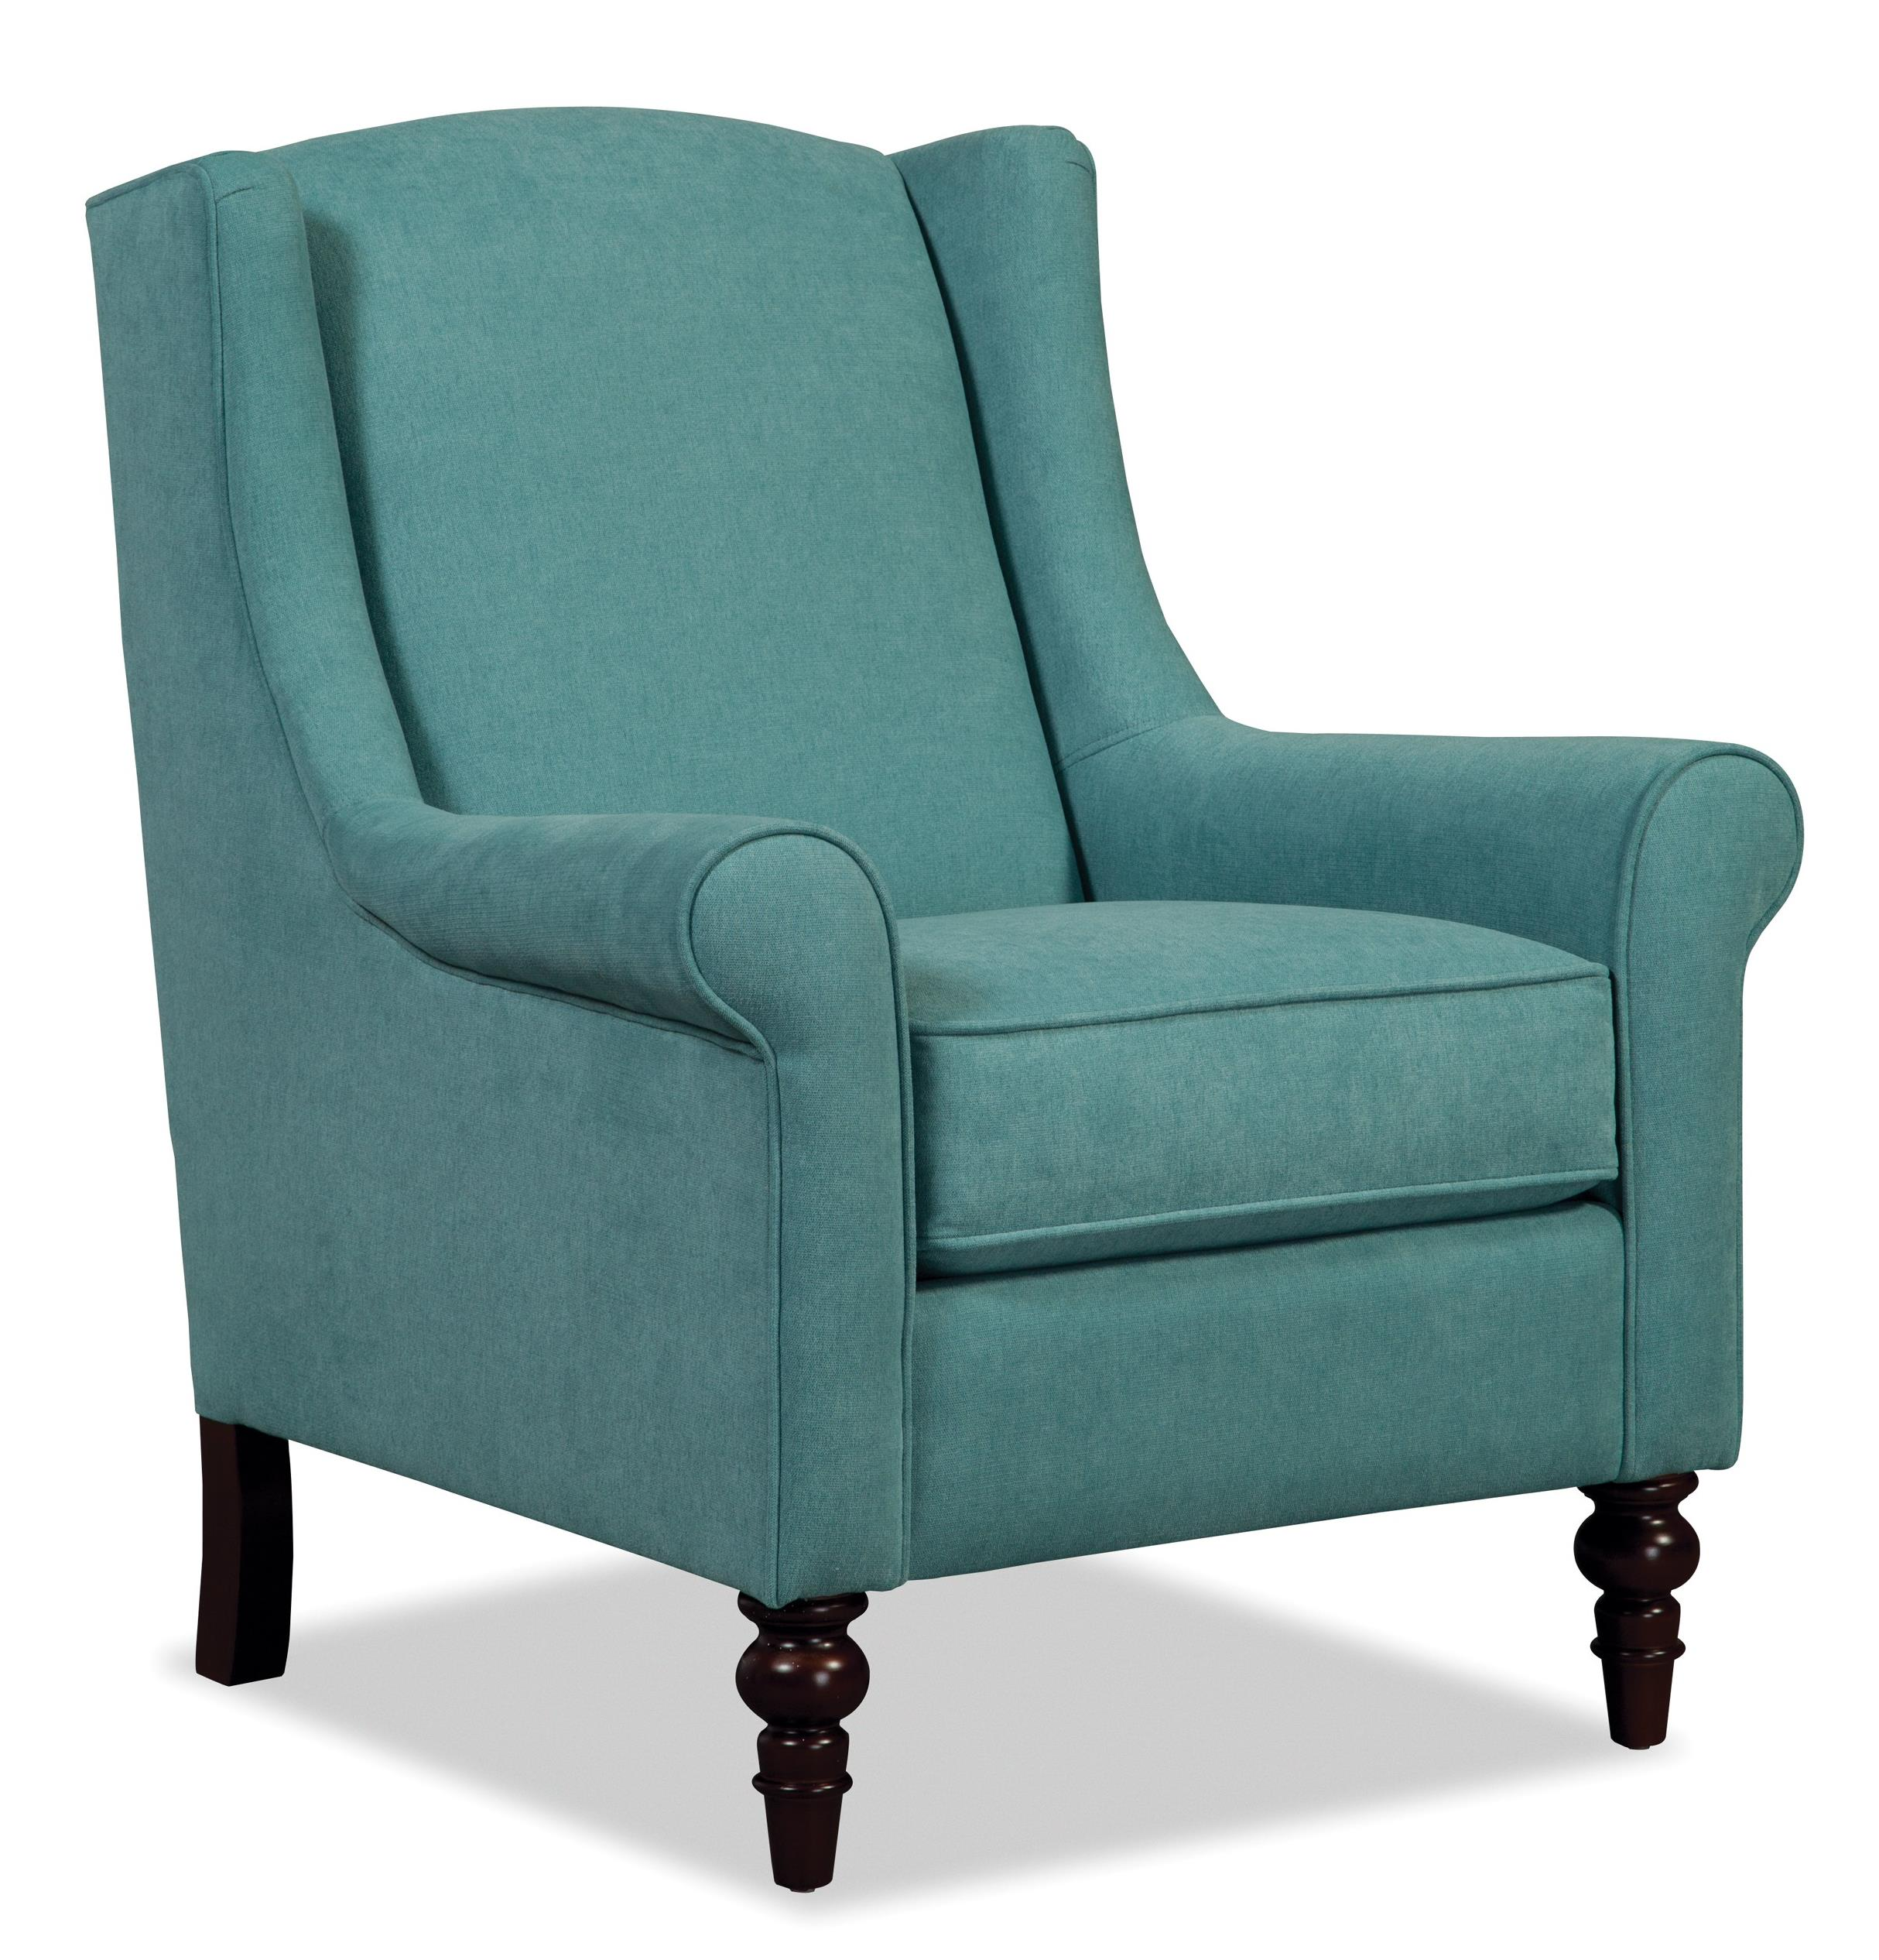 Craftmaster Accent Chairs Chair - Item Number: 058710-ABERDEEN-22